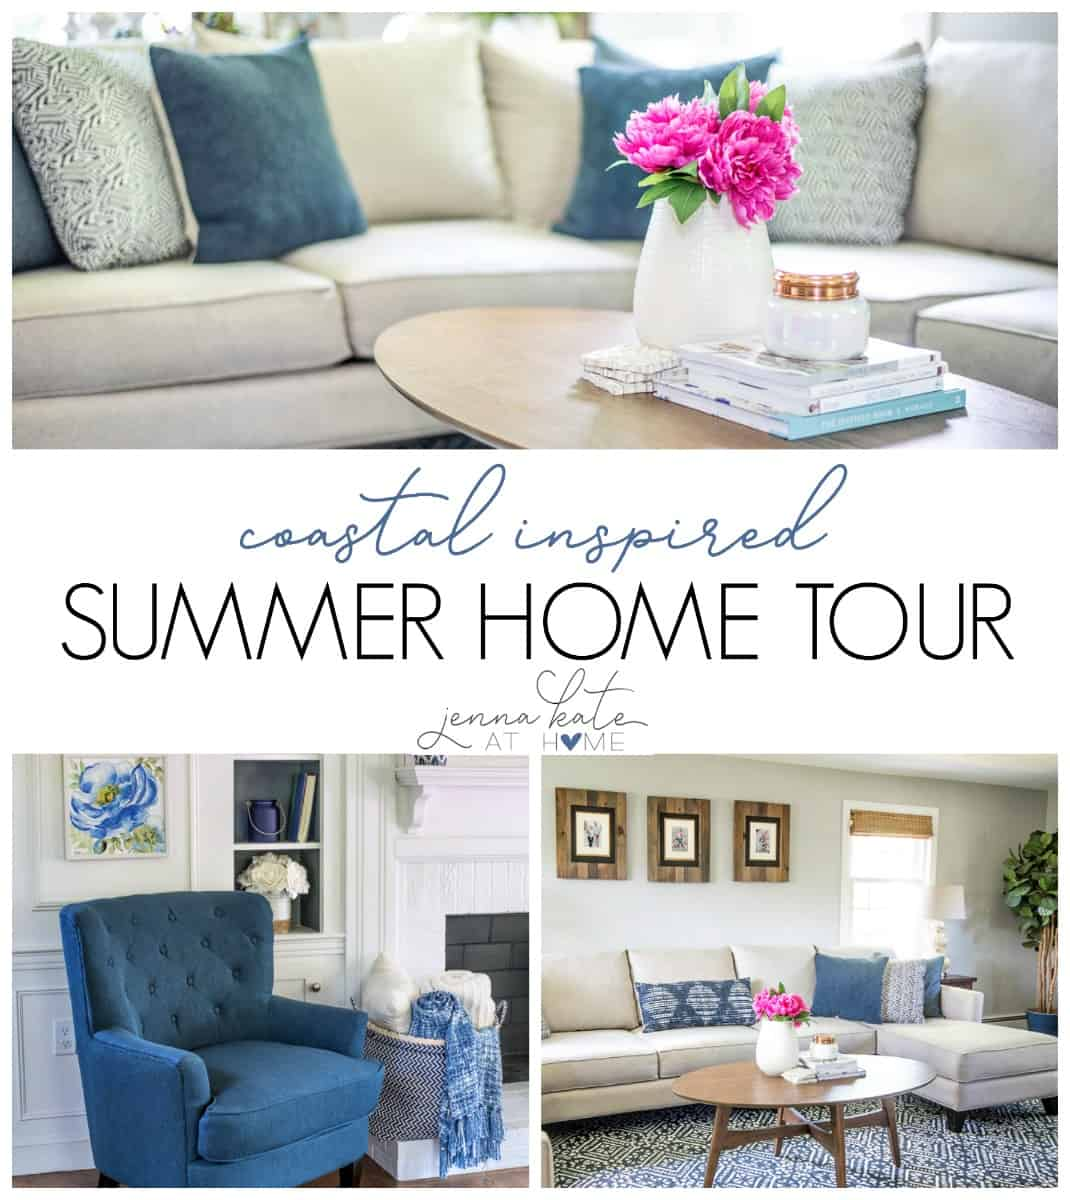 A coastal navy blue and white inspired living room for summer. Great ideas and inspiration as well as sources!